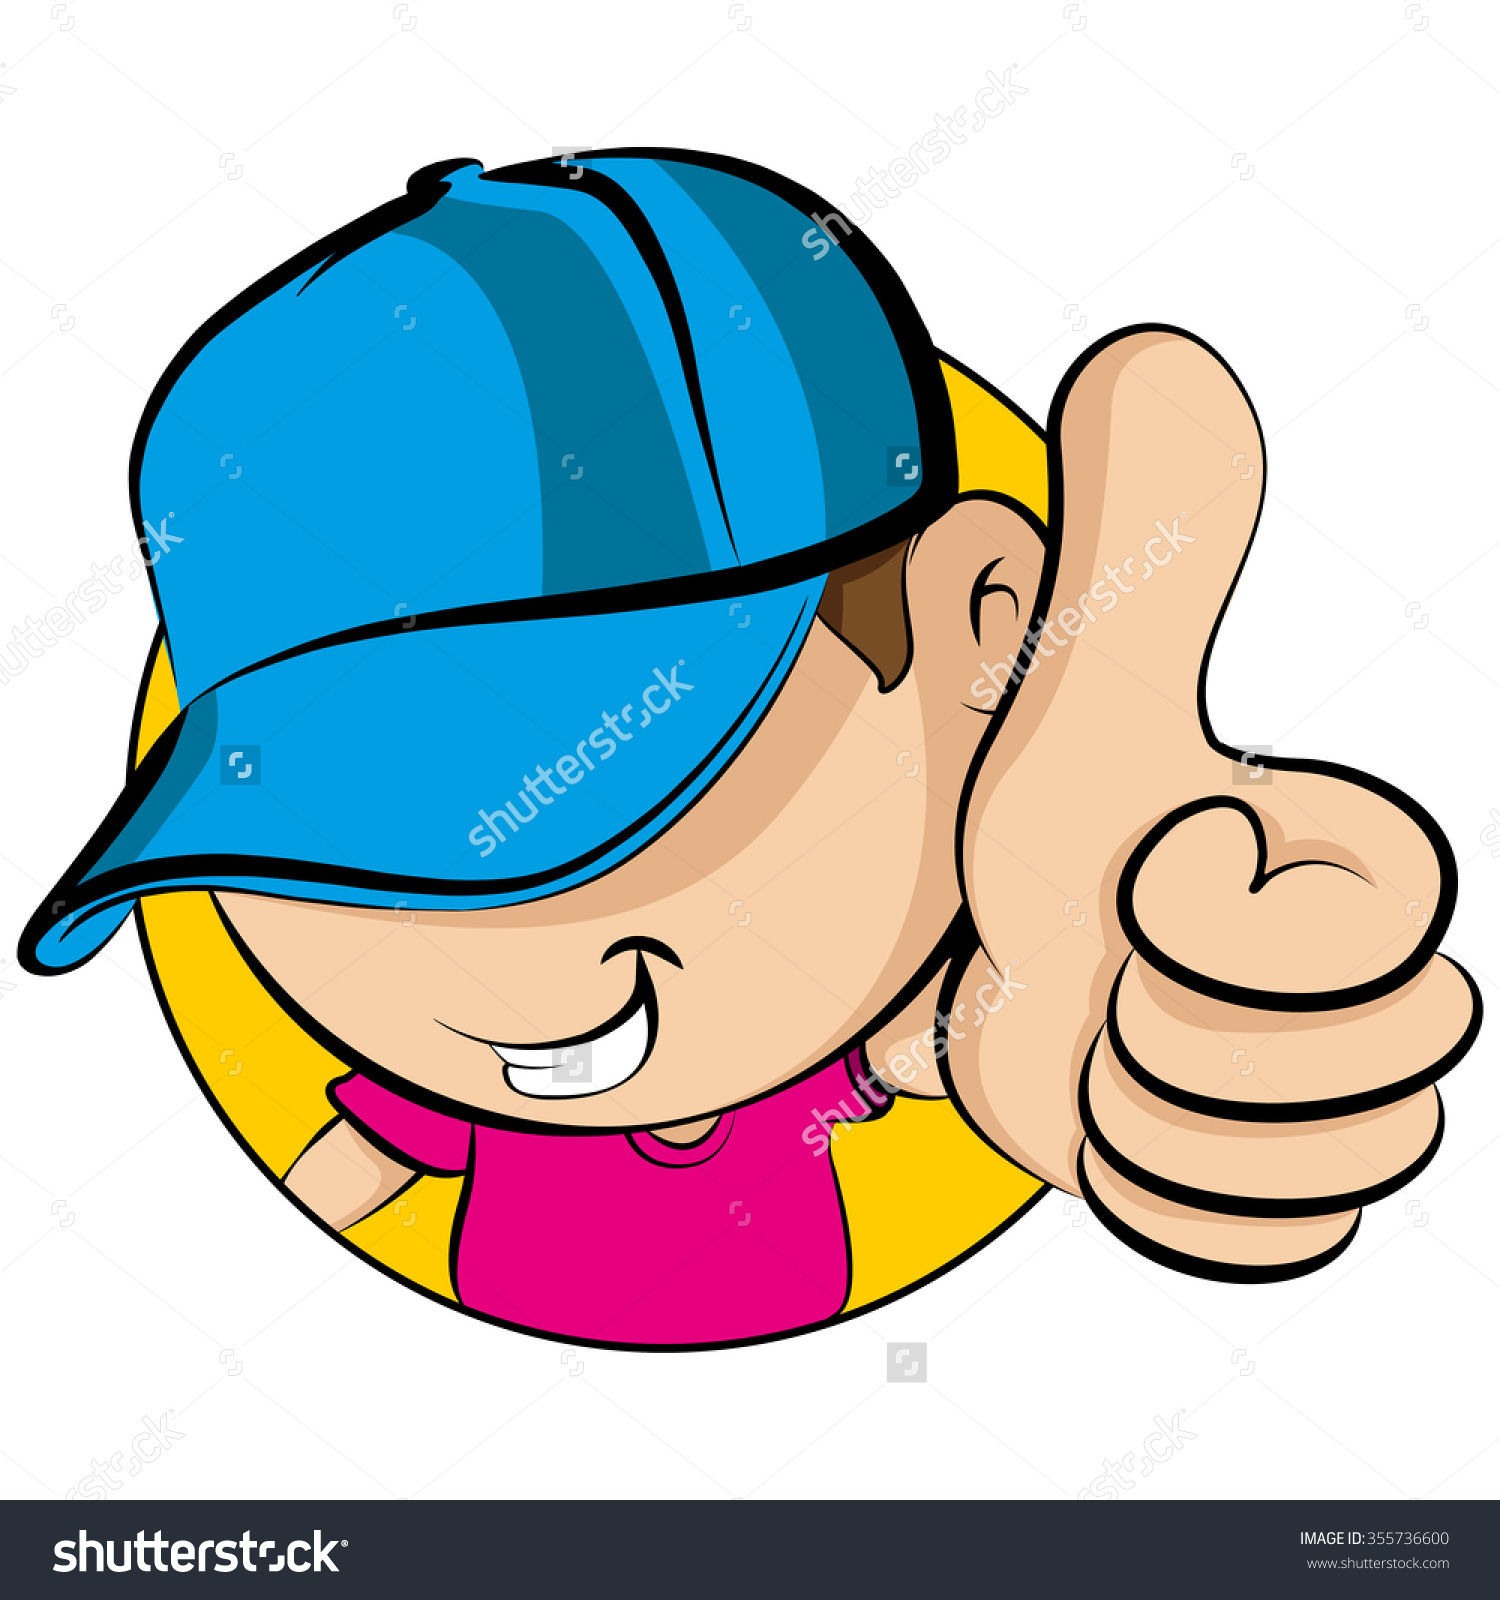 Boy thumbs up clipart jpg transparent download Thumbs up kid clipart - ClipartFest jpg transparent download